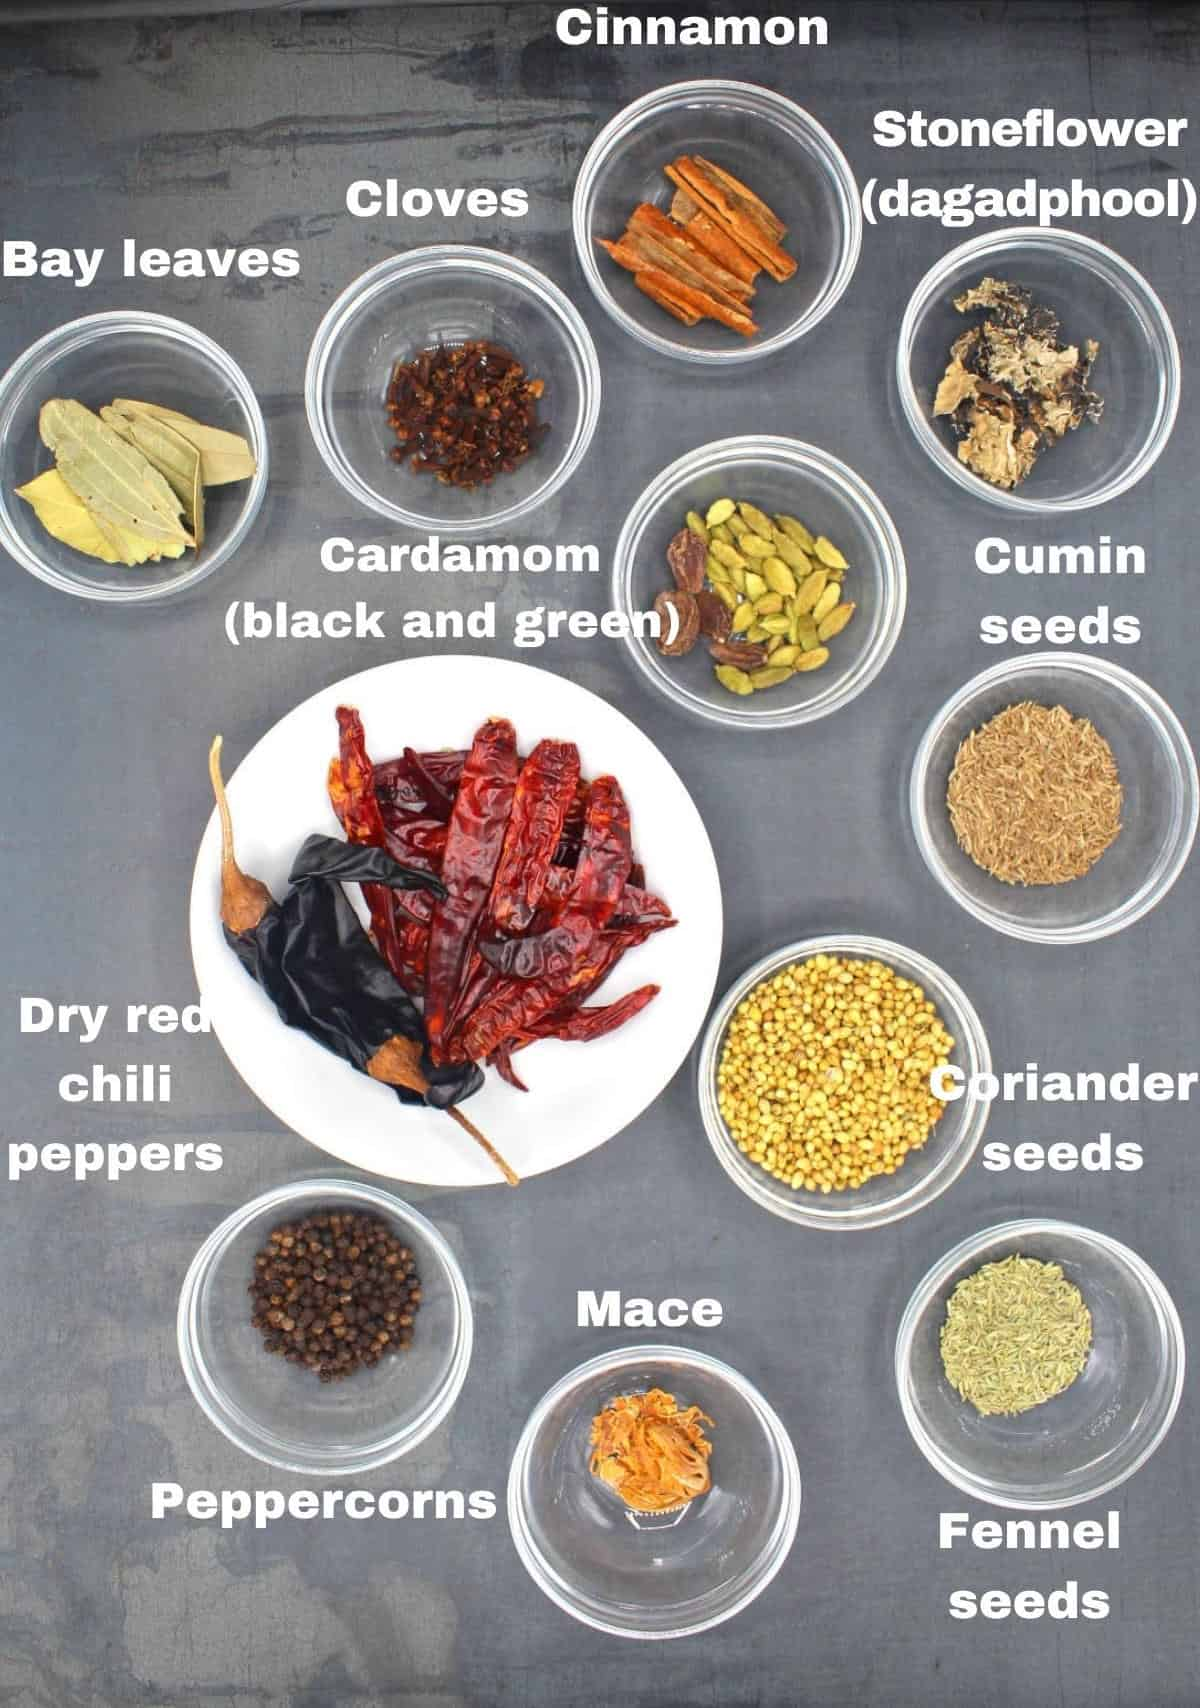 All of the whole spices for garam masala in bowls, including cinnamon, cloves, cardamom, stoneflower, fennel seeds, peppercorns, bay leaves, coriander seeds, red chili peppers, mace and coriander seeds.